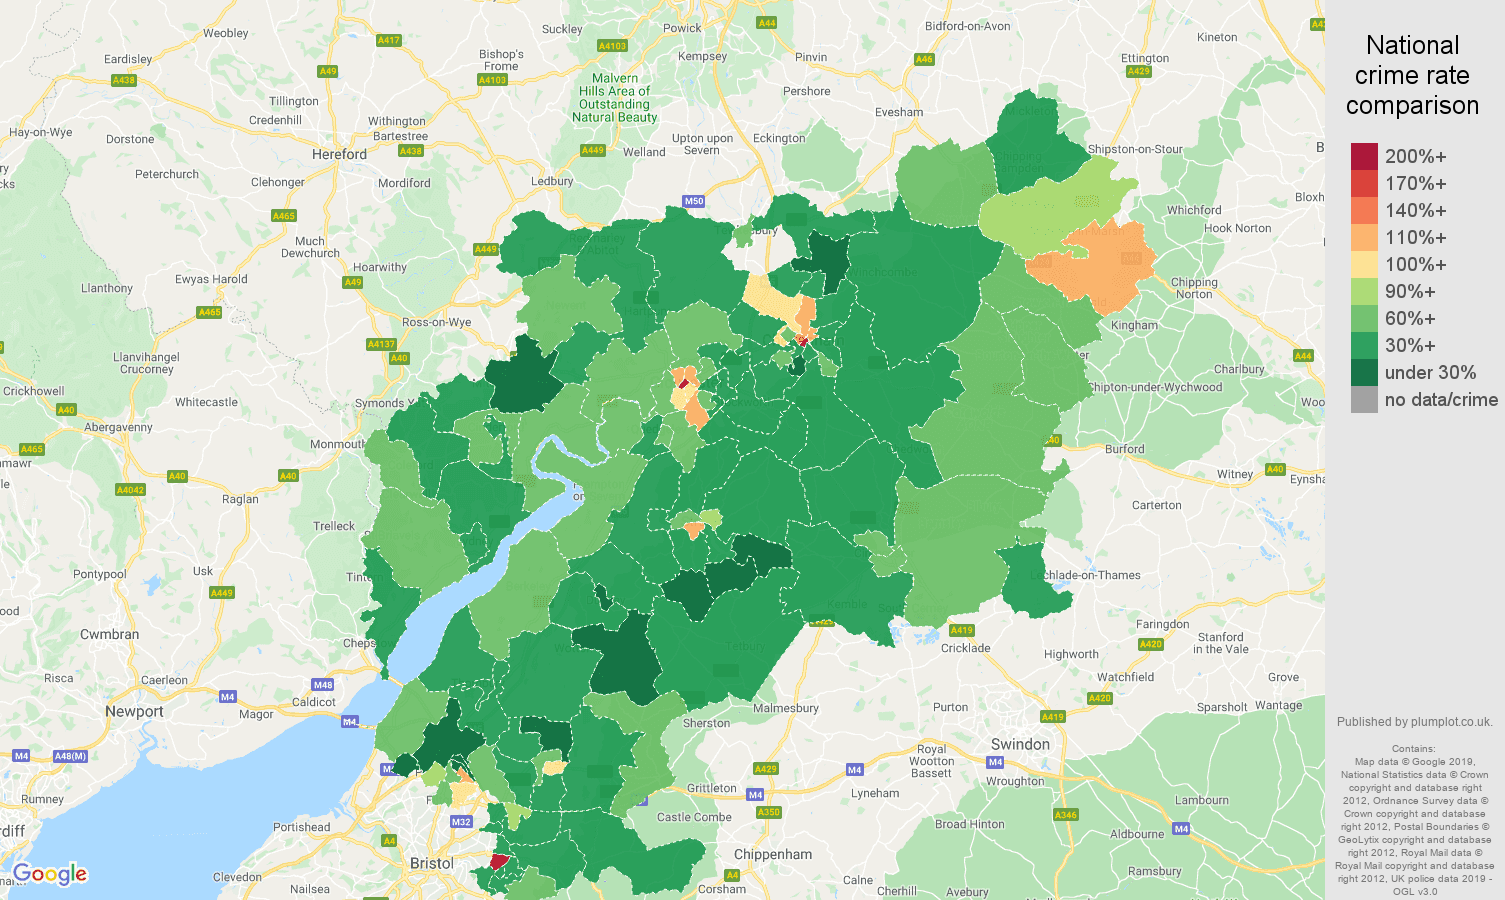 Gloucestershire other theft crime rate comparison map